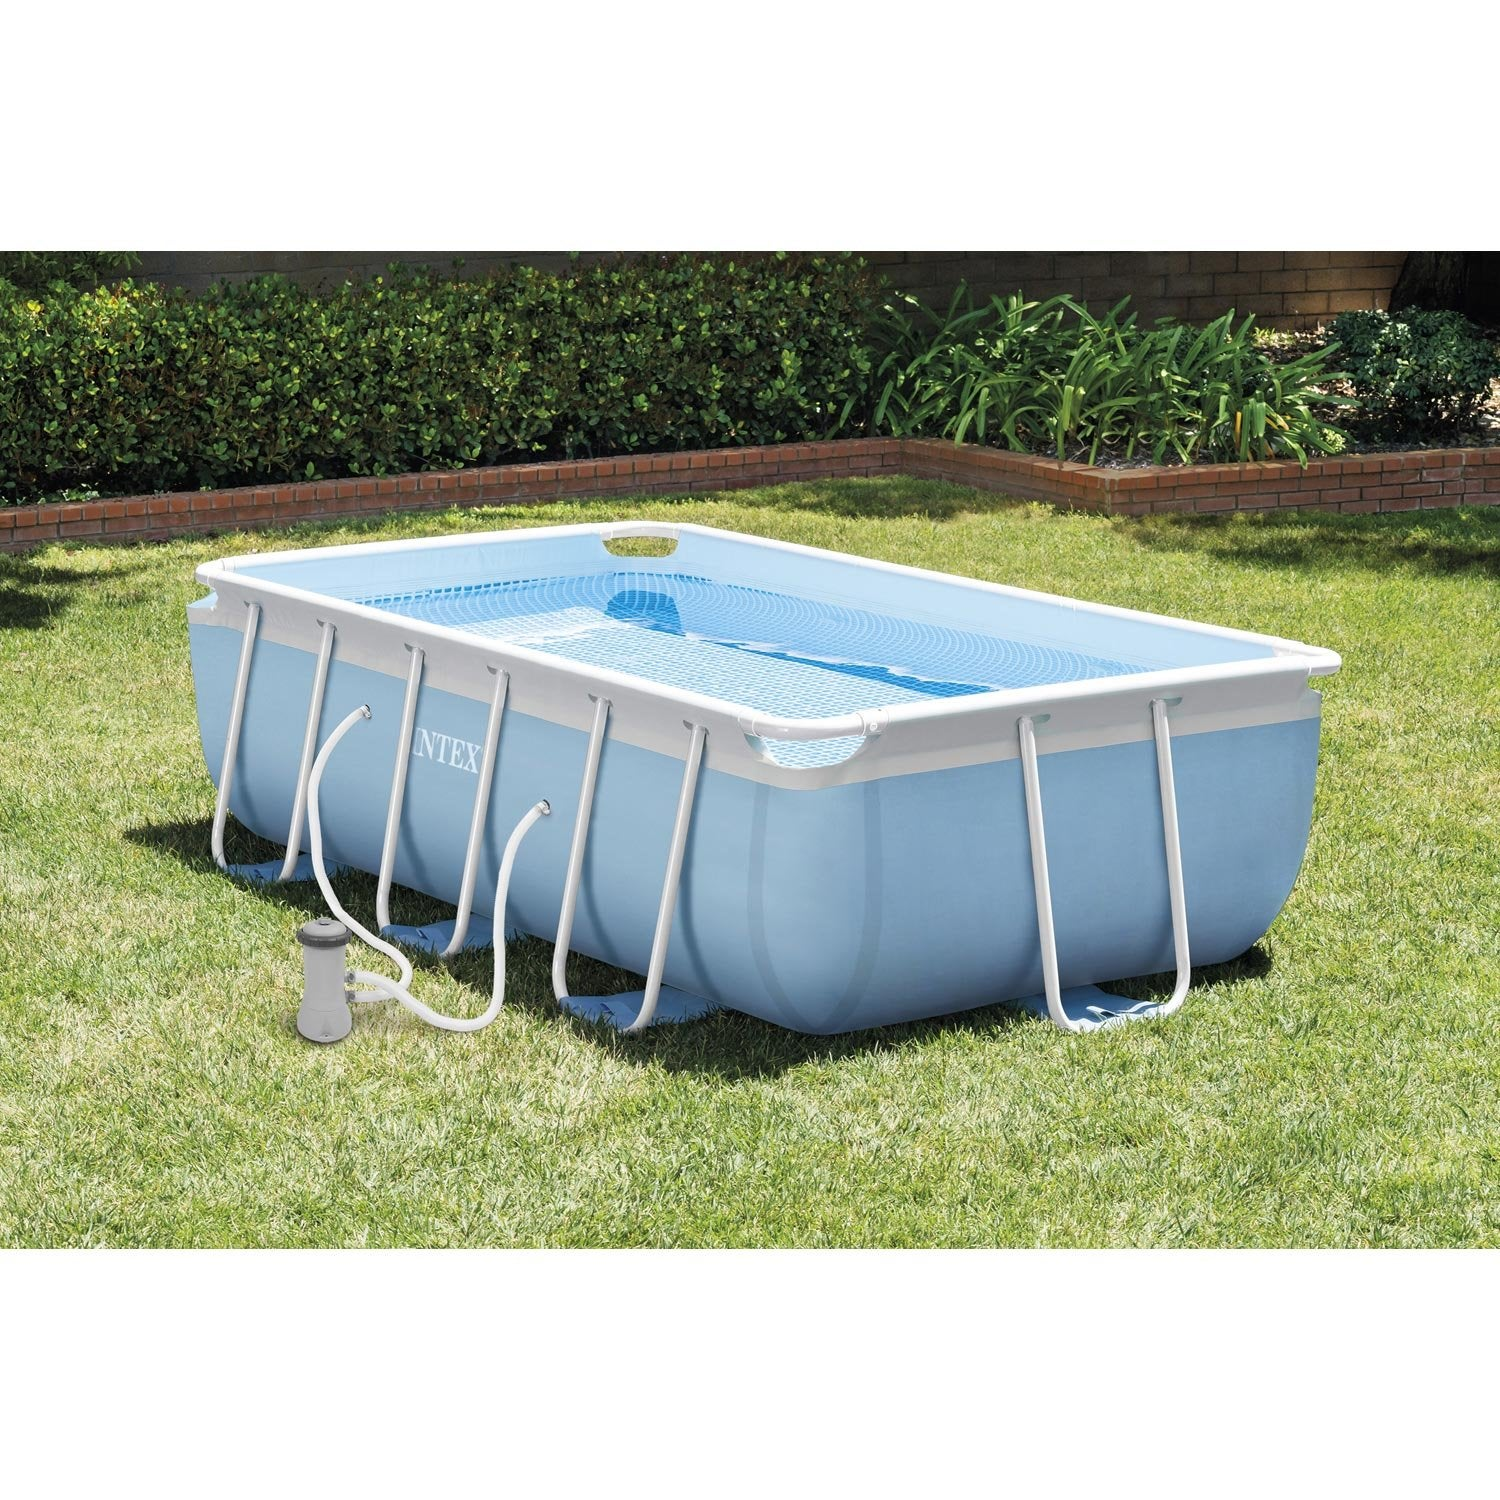 Piscine hors sol autoportante tubulaire intex l 3 4 x l 2 for Piscine carree hors sol